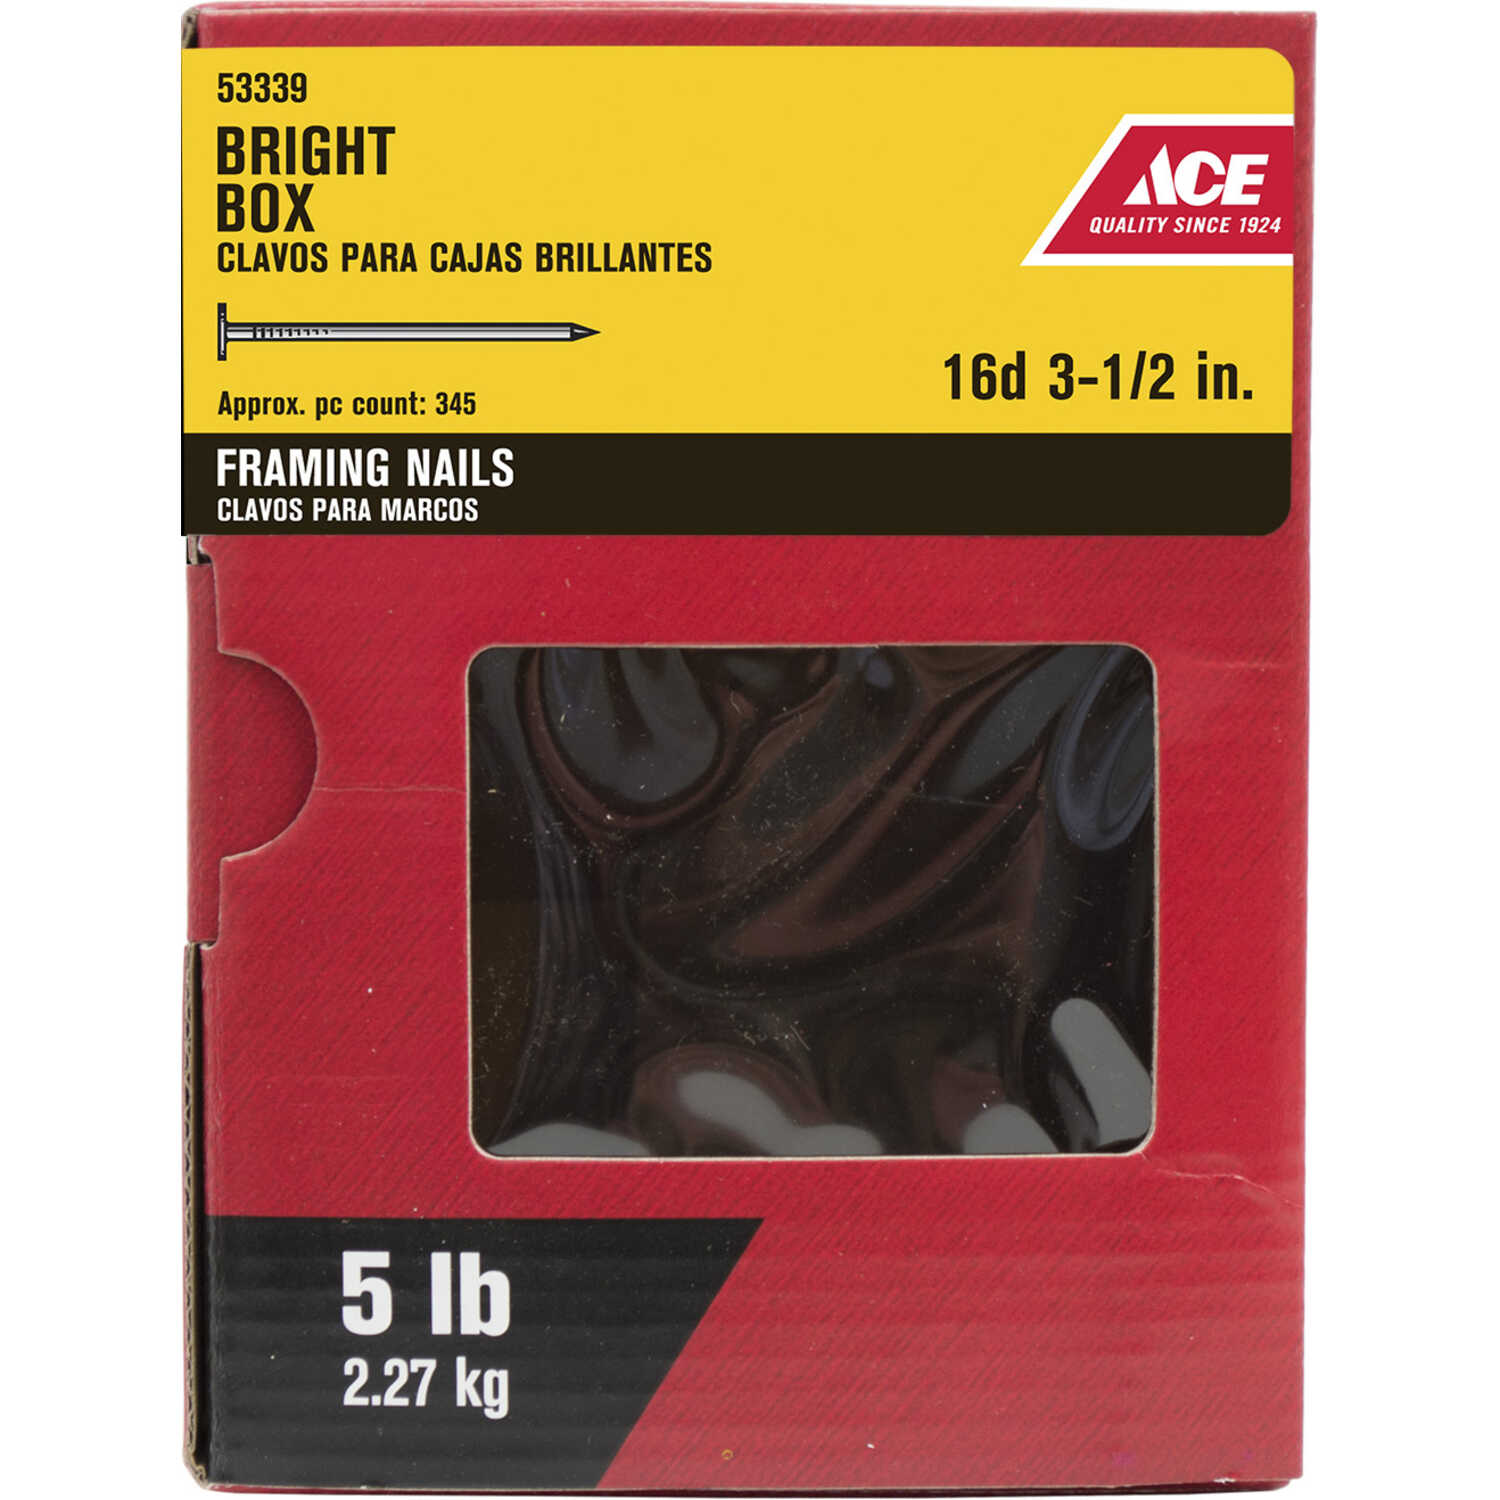 Ace  16D  3-1/2 in. L Box  Bright  Steel  Nail  Smooth Shank  Flat  5 lb.